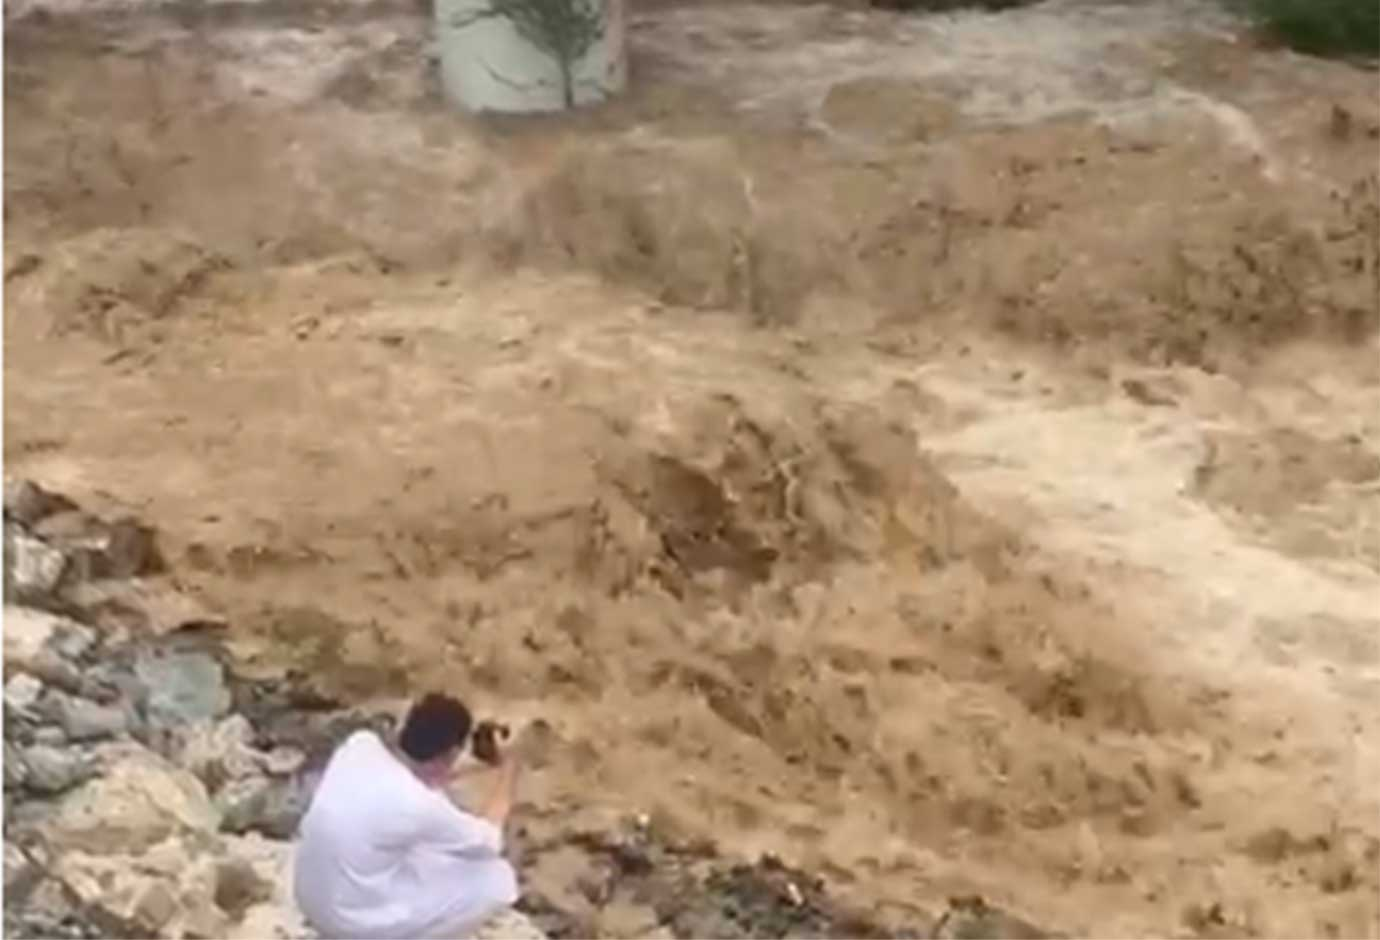 Rains have housed areas in the UAE's east coast